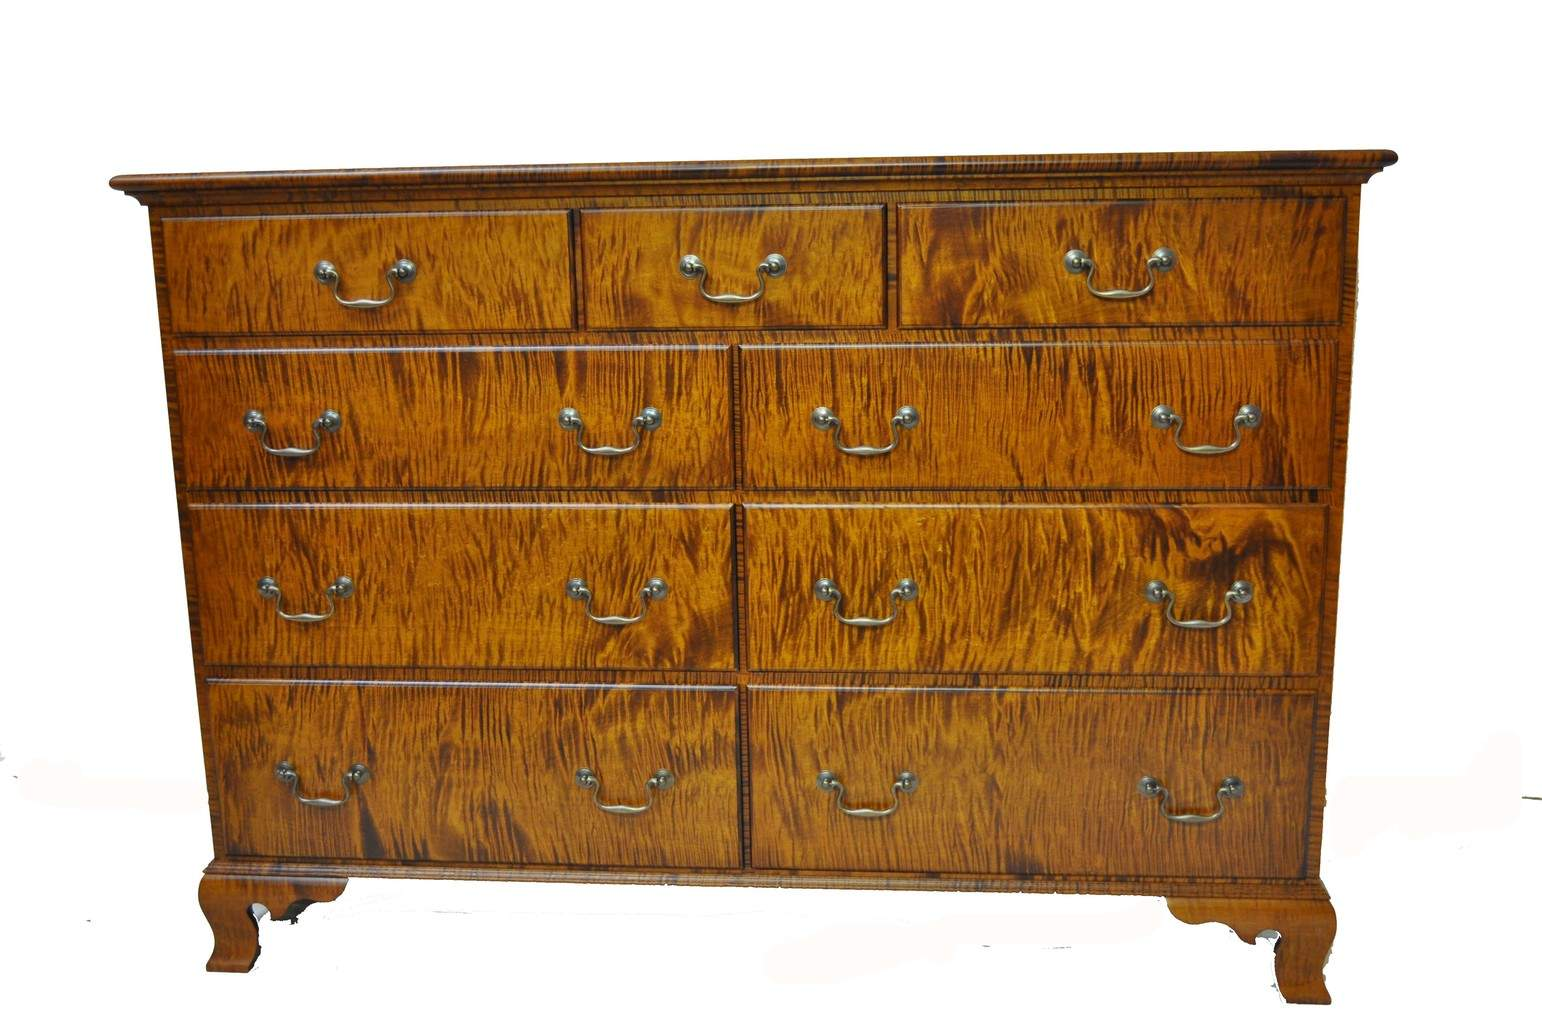 Historical Nine Drawer Dresser Image